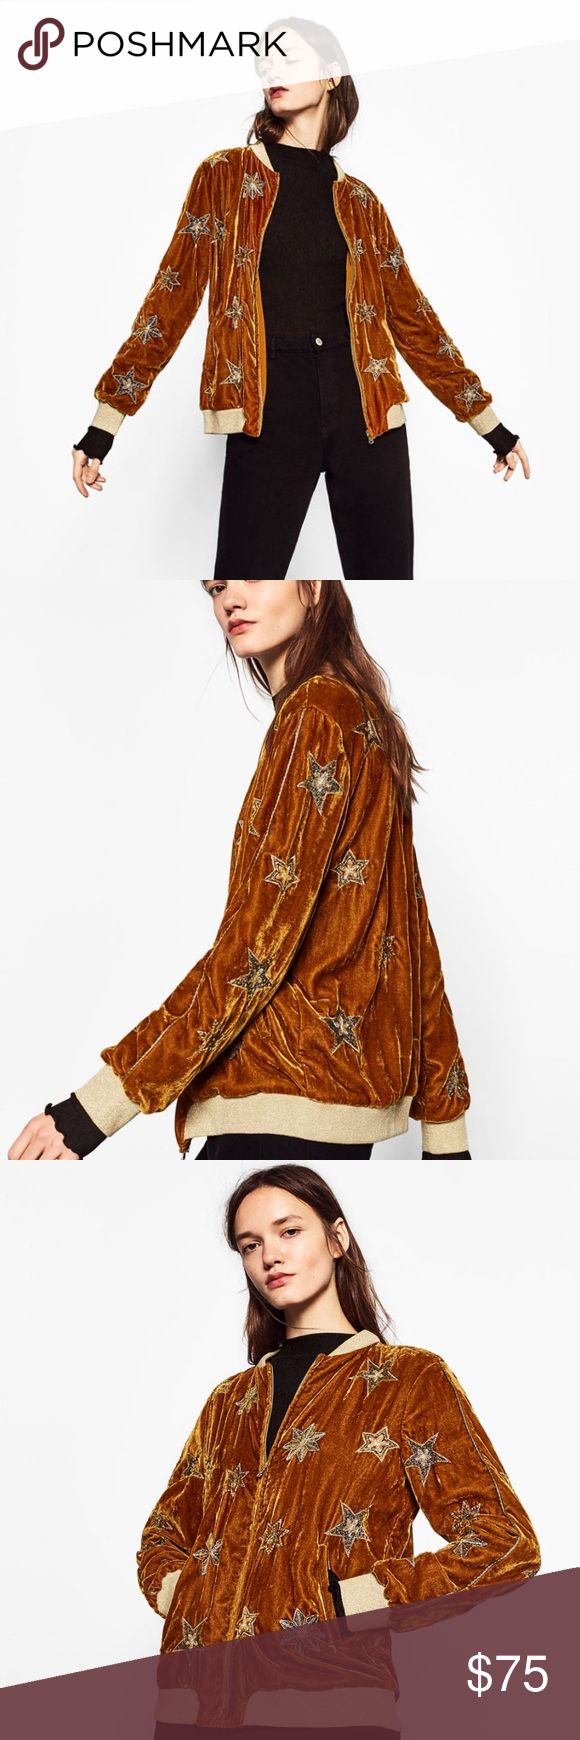 Zara Velvet Bomber Jacket Velvet bomber jacket by Zara with embroidered stars. Brand new with tag. Sold out online. Size small. Hip length with long sleeves and side pockets. Fully lined. Zara Jackets & Coats